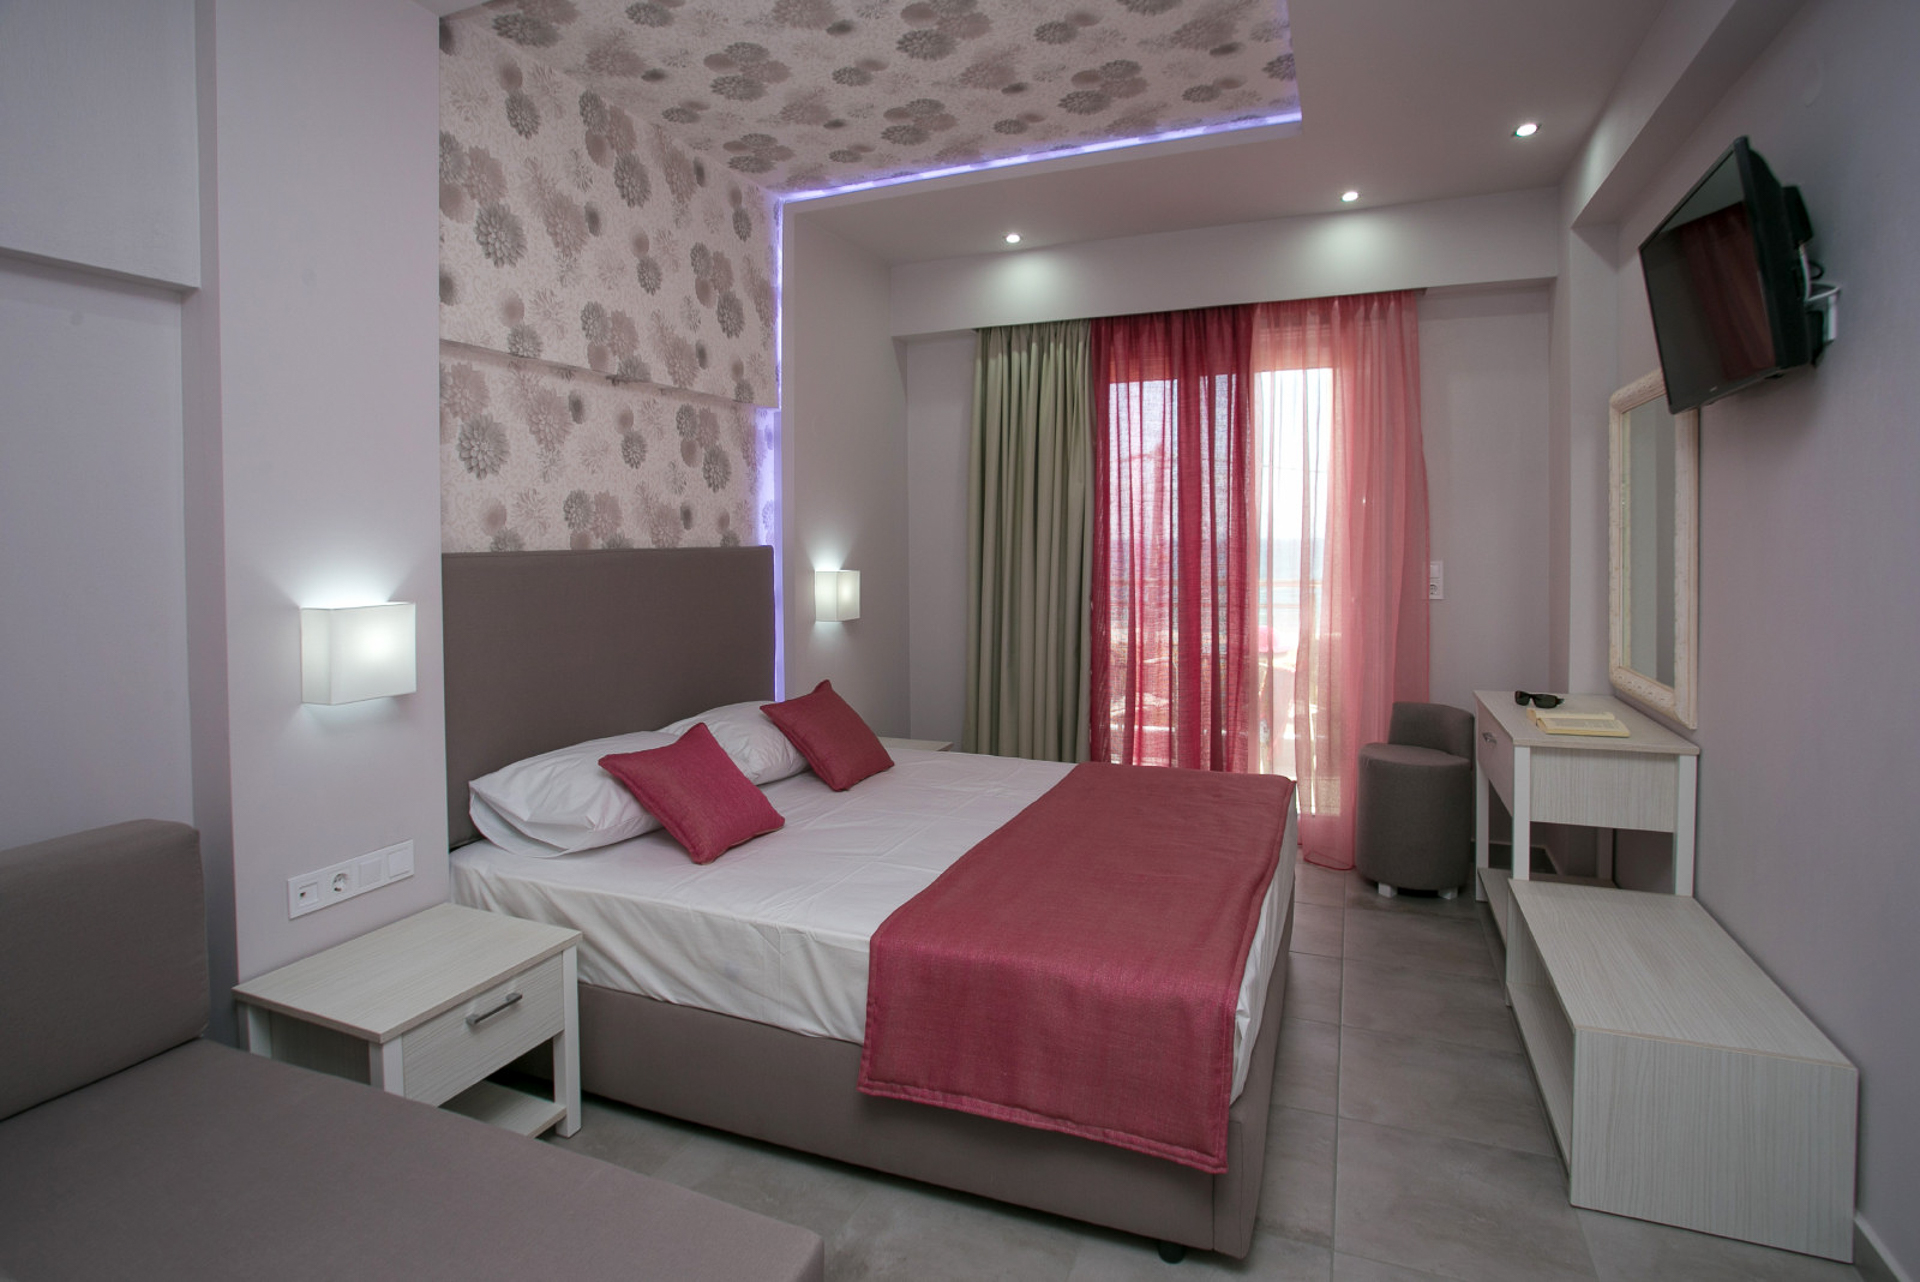 la feyra luxury rooms limenaria thassos ruby room 1